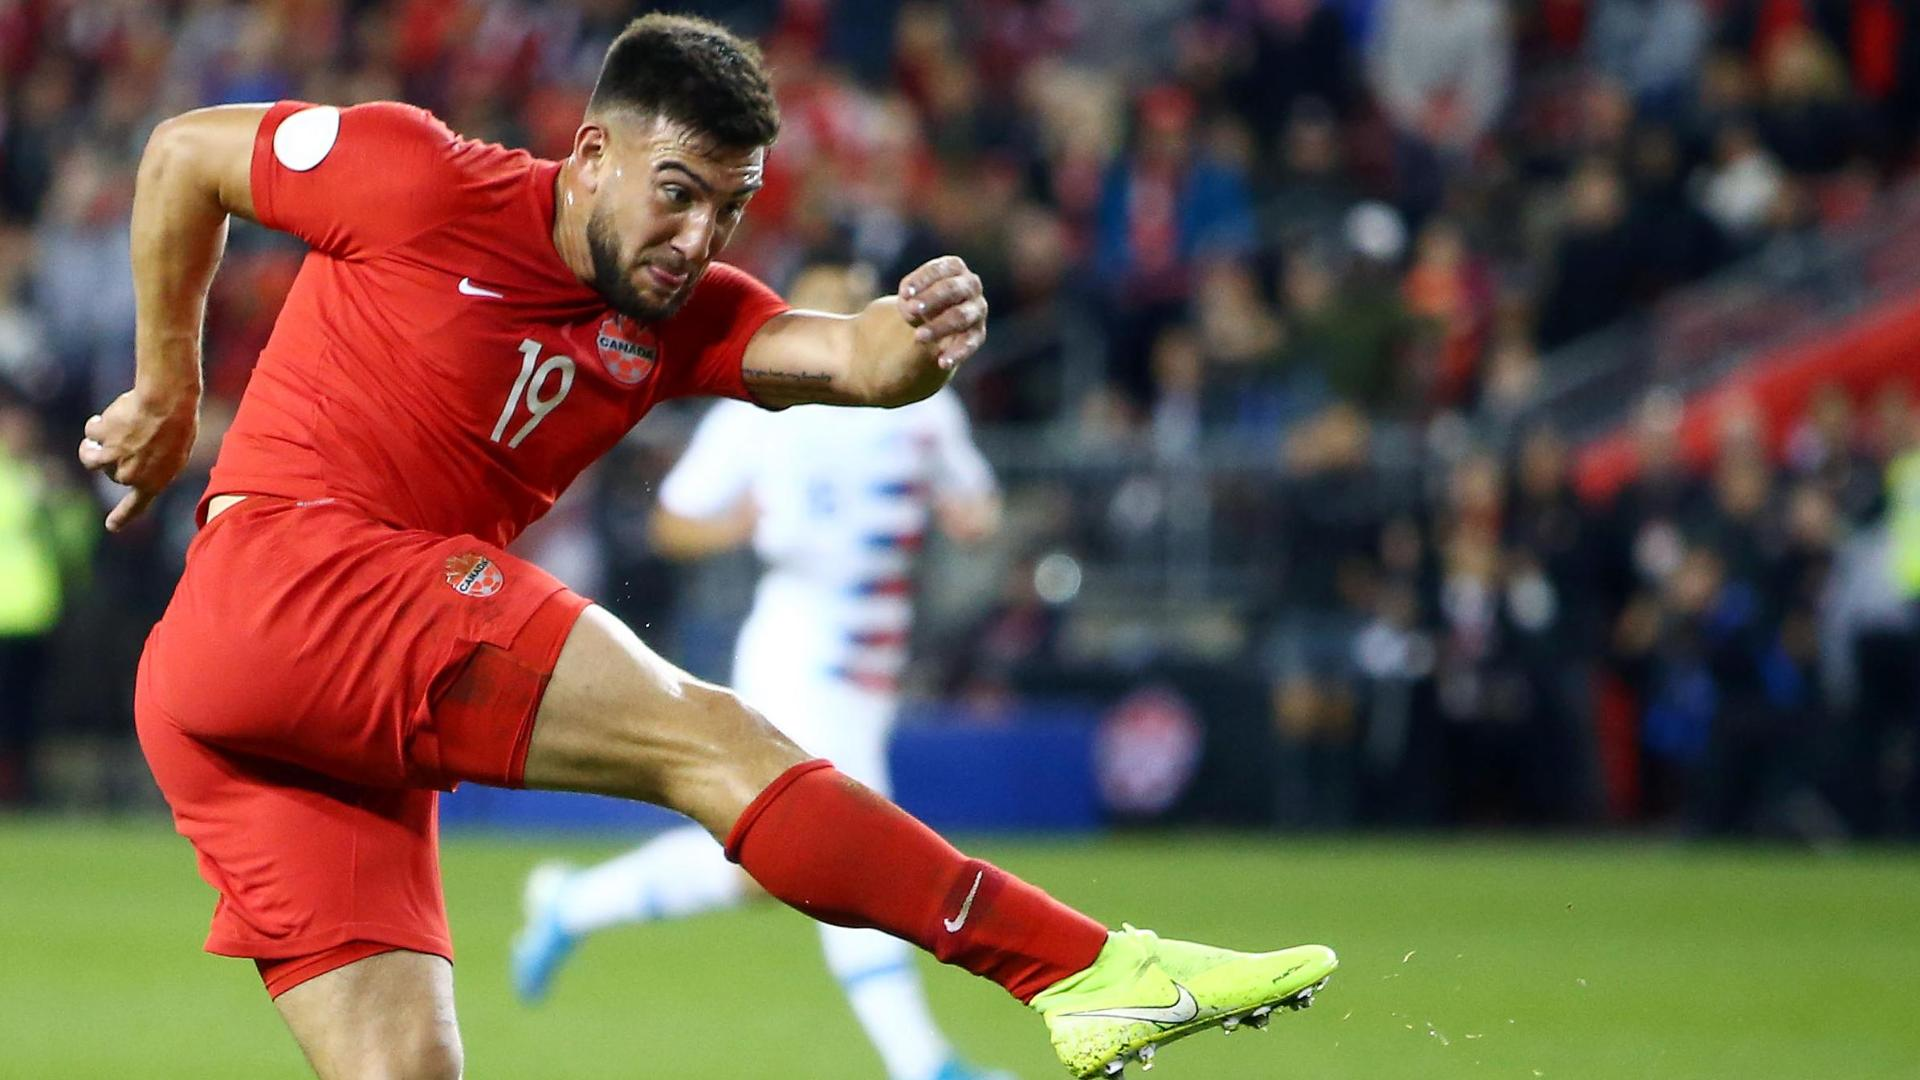 Cavallini adds to U.S. misery with second goal for Canada